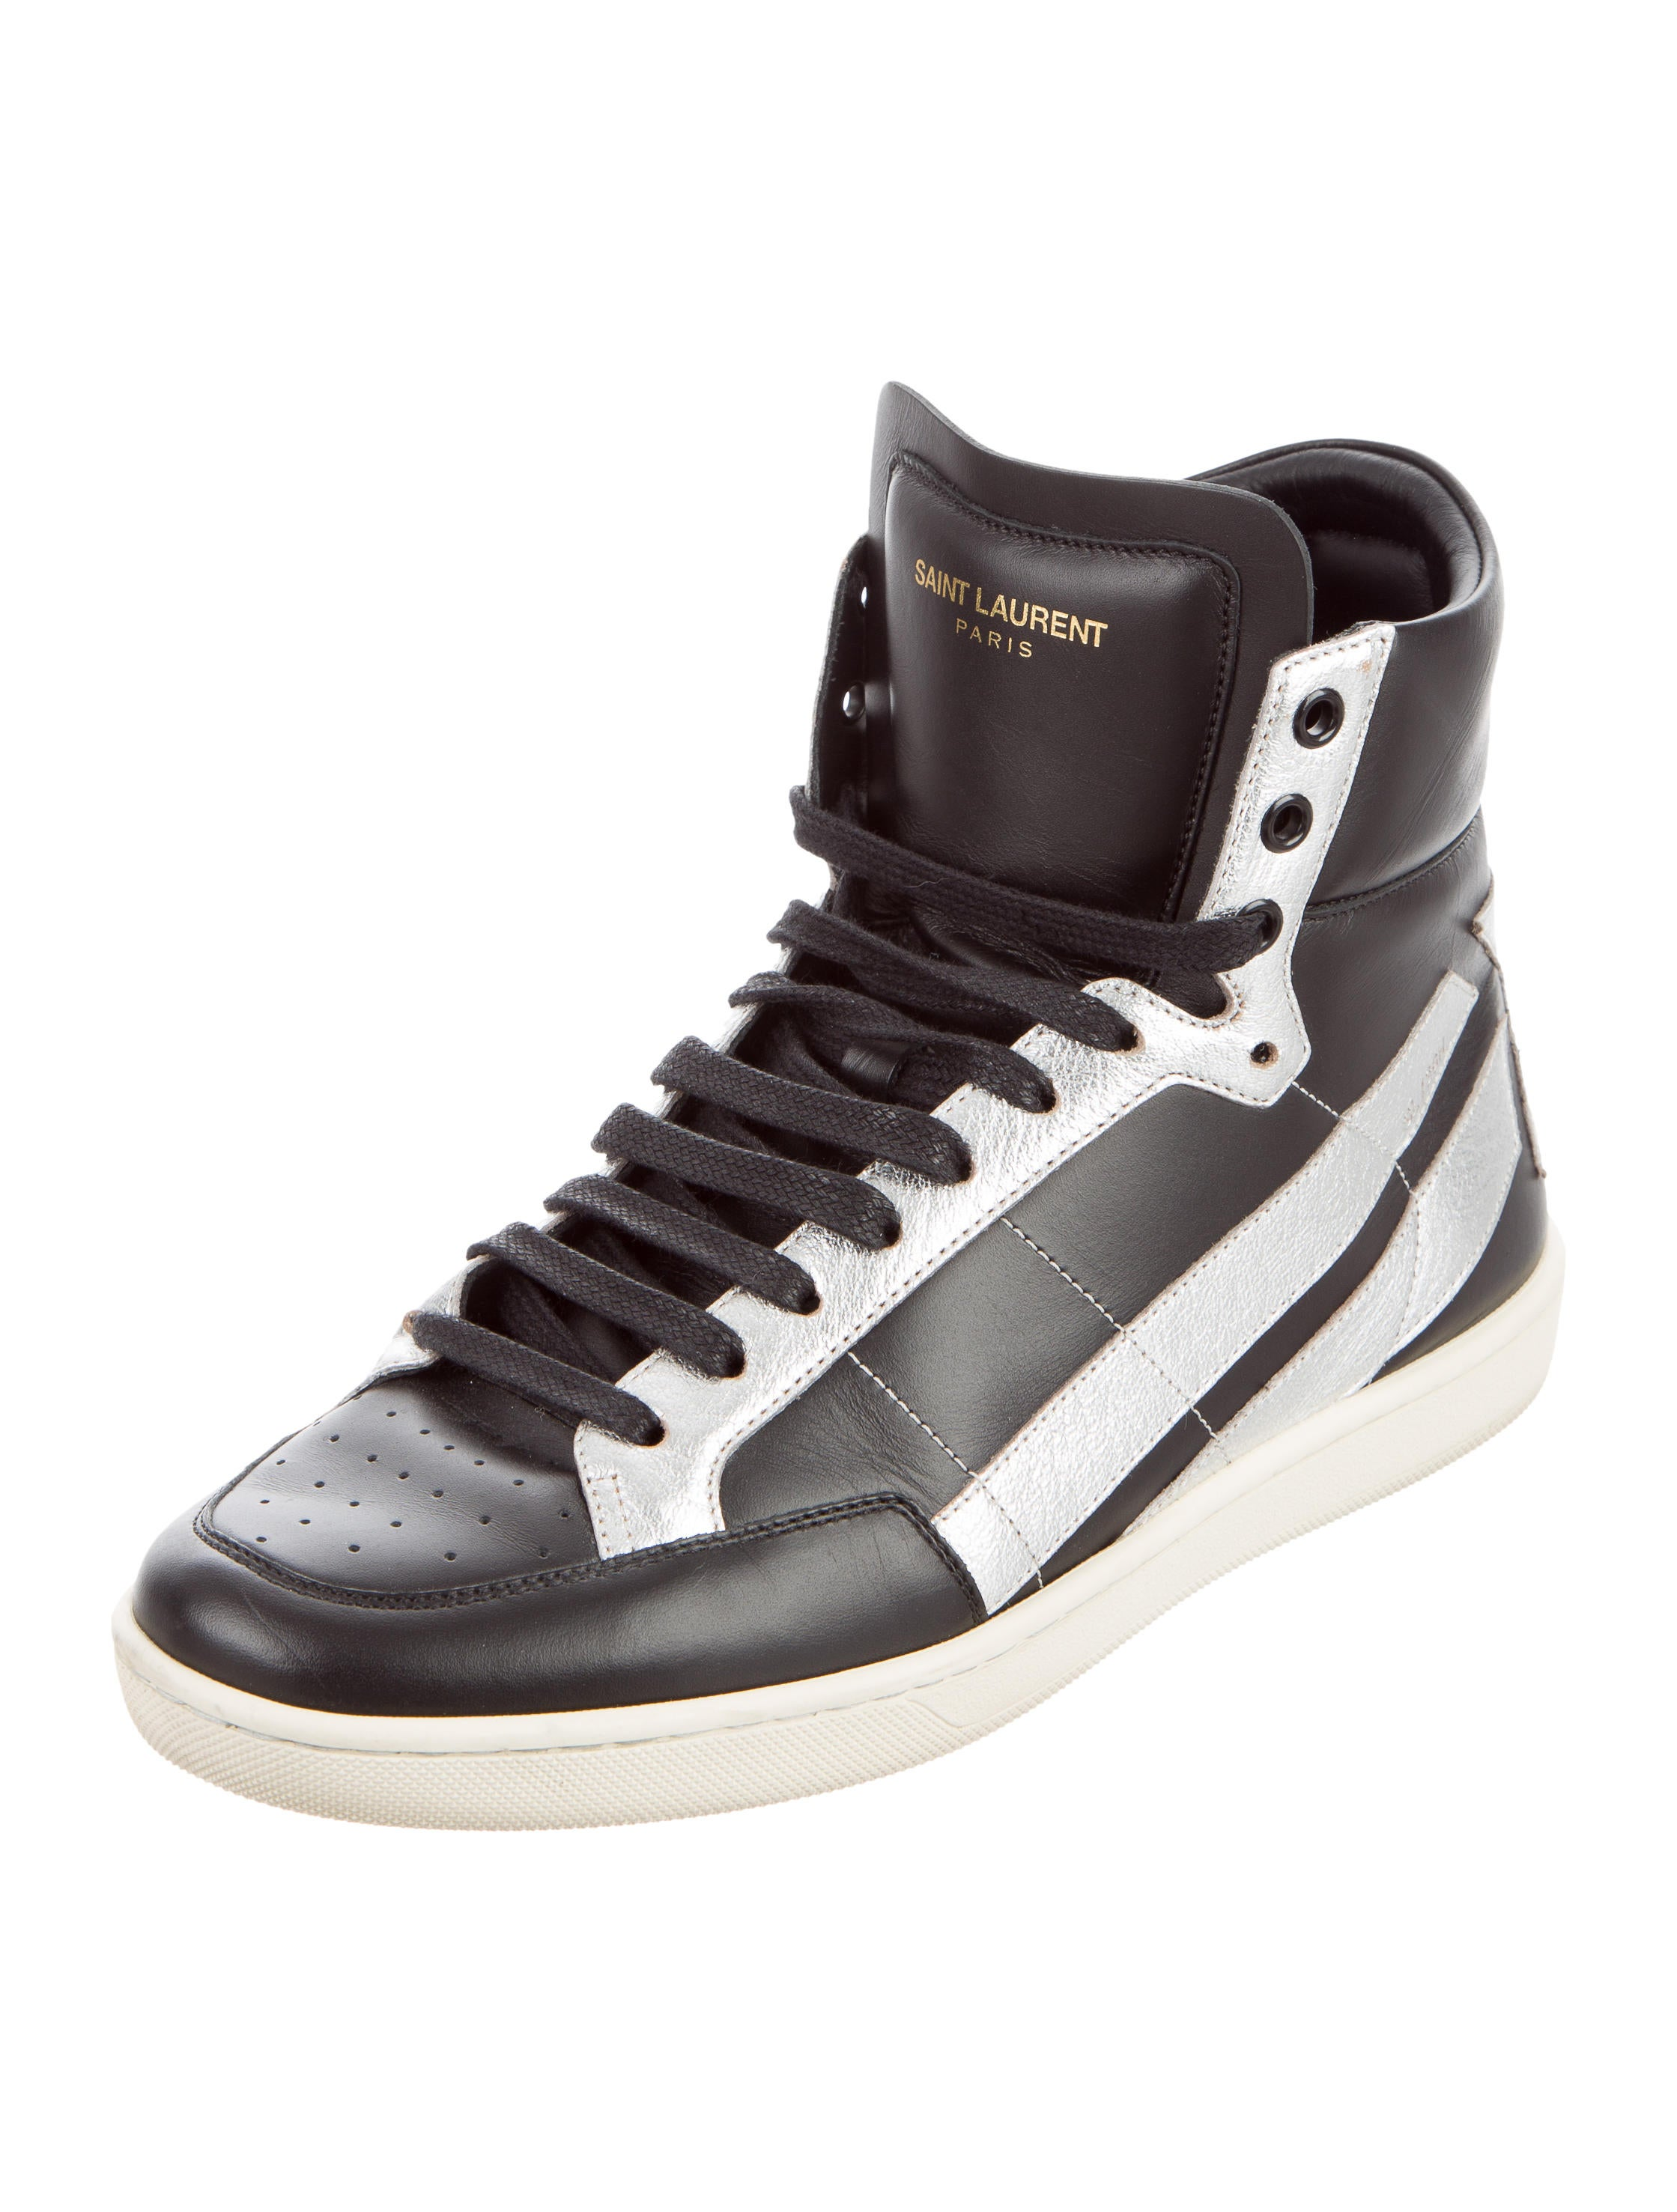 saint laurent star leather sneakers shoes snt31257 the realreal. Black Bedroom Furniture Sets. Home Design Ideas